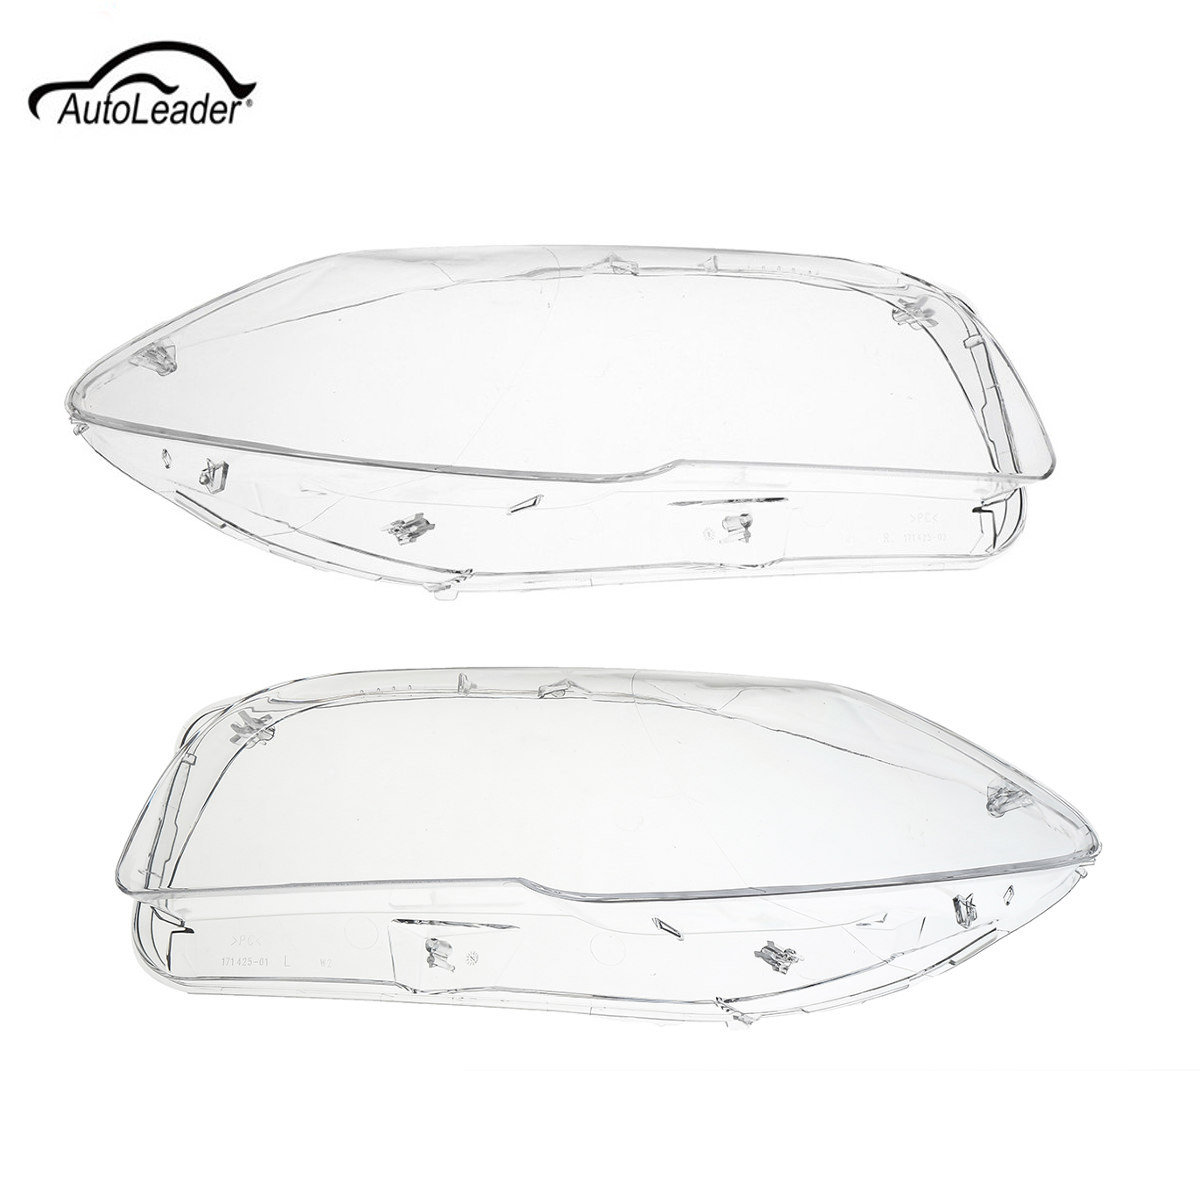 1Pcs Right /Left Side Car Headlight Clear Lens Cover Shell For BMW F10 F18 520 523 525 535 530 2010-2014 isincer car headlight lens for bmw f30 headlamp cover case shell lamp assembly f30 f31 2013 2016 car styling accessary